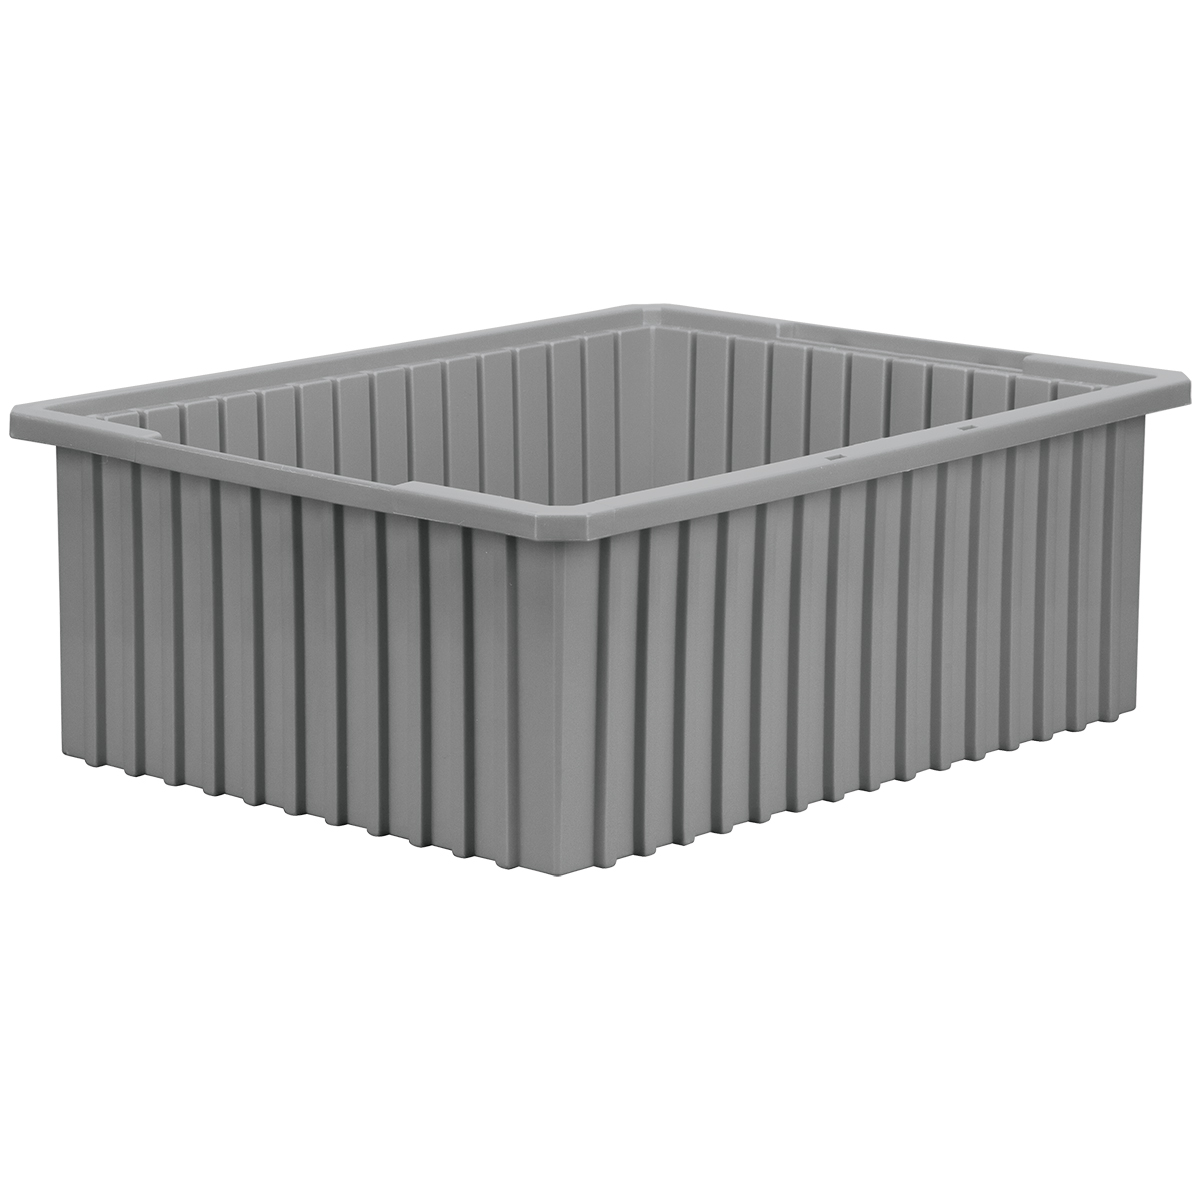 Akro-Grid Dividable Box 22-3/8 x 17-3/8 x 8, Gray (33228GREY).  This item sold in carton quantities of 3.